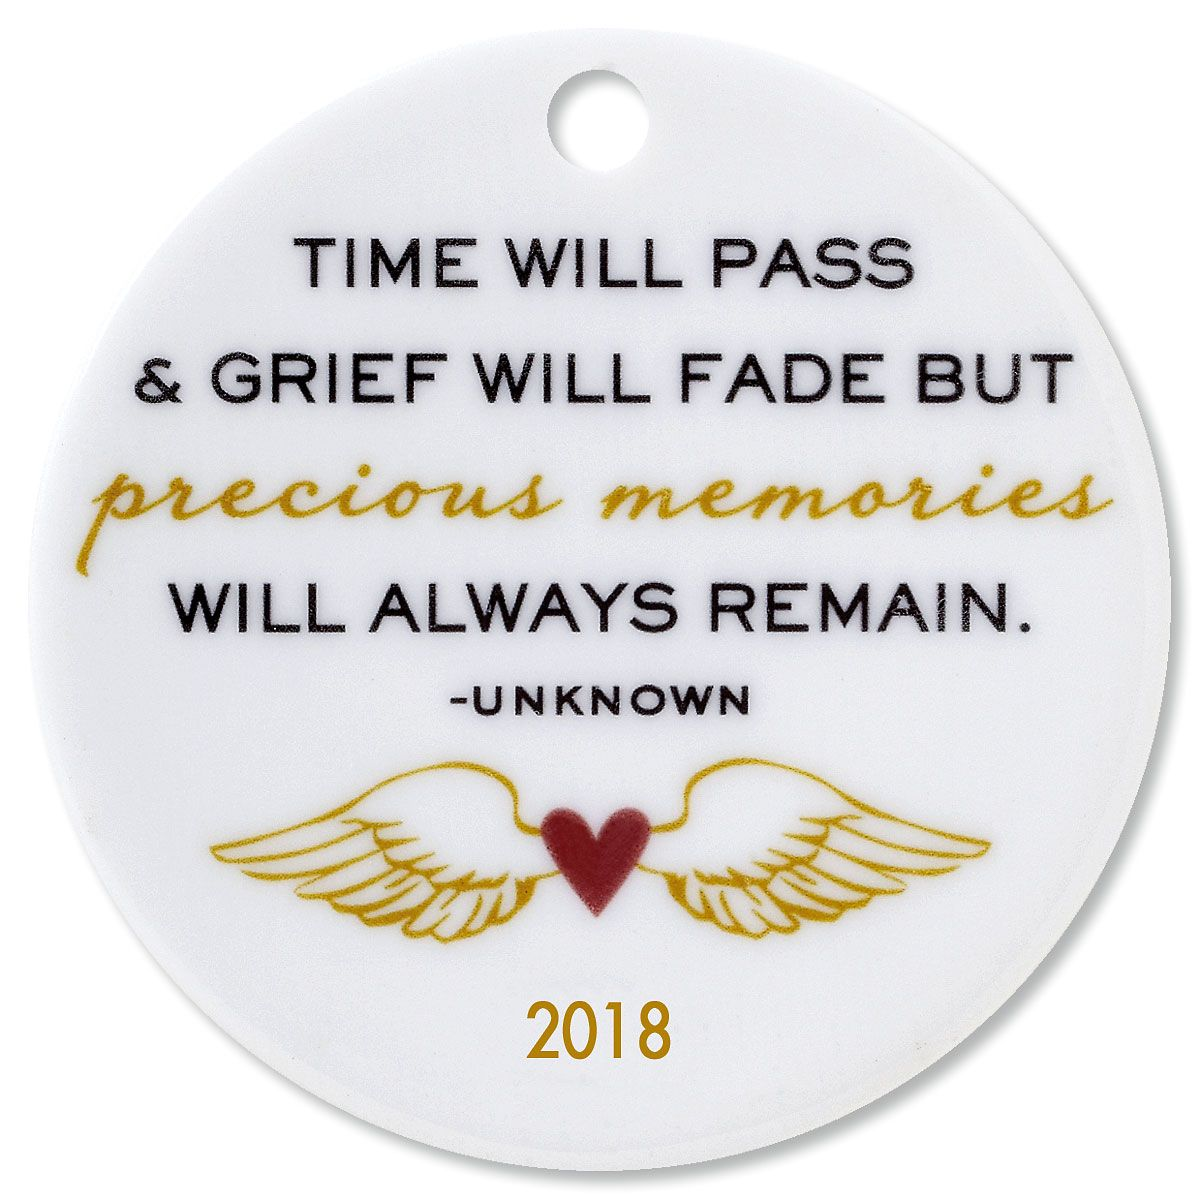 Personalized Time Will Pass Round Memorial Christmas Ornament